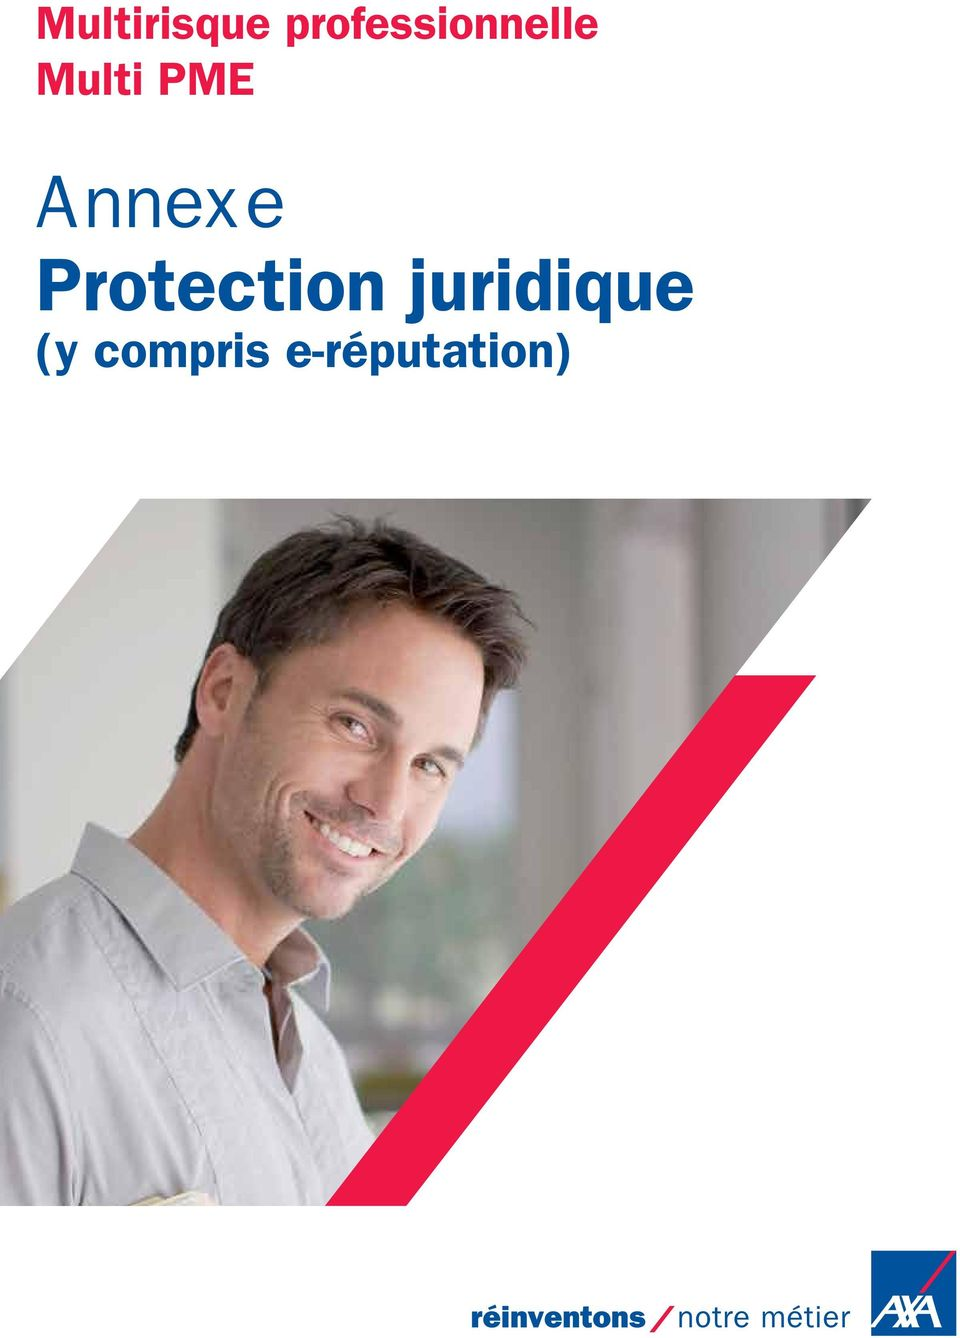 PME Annexe Protection